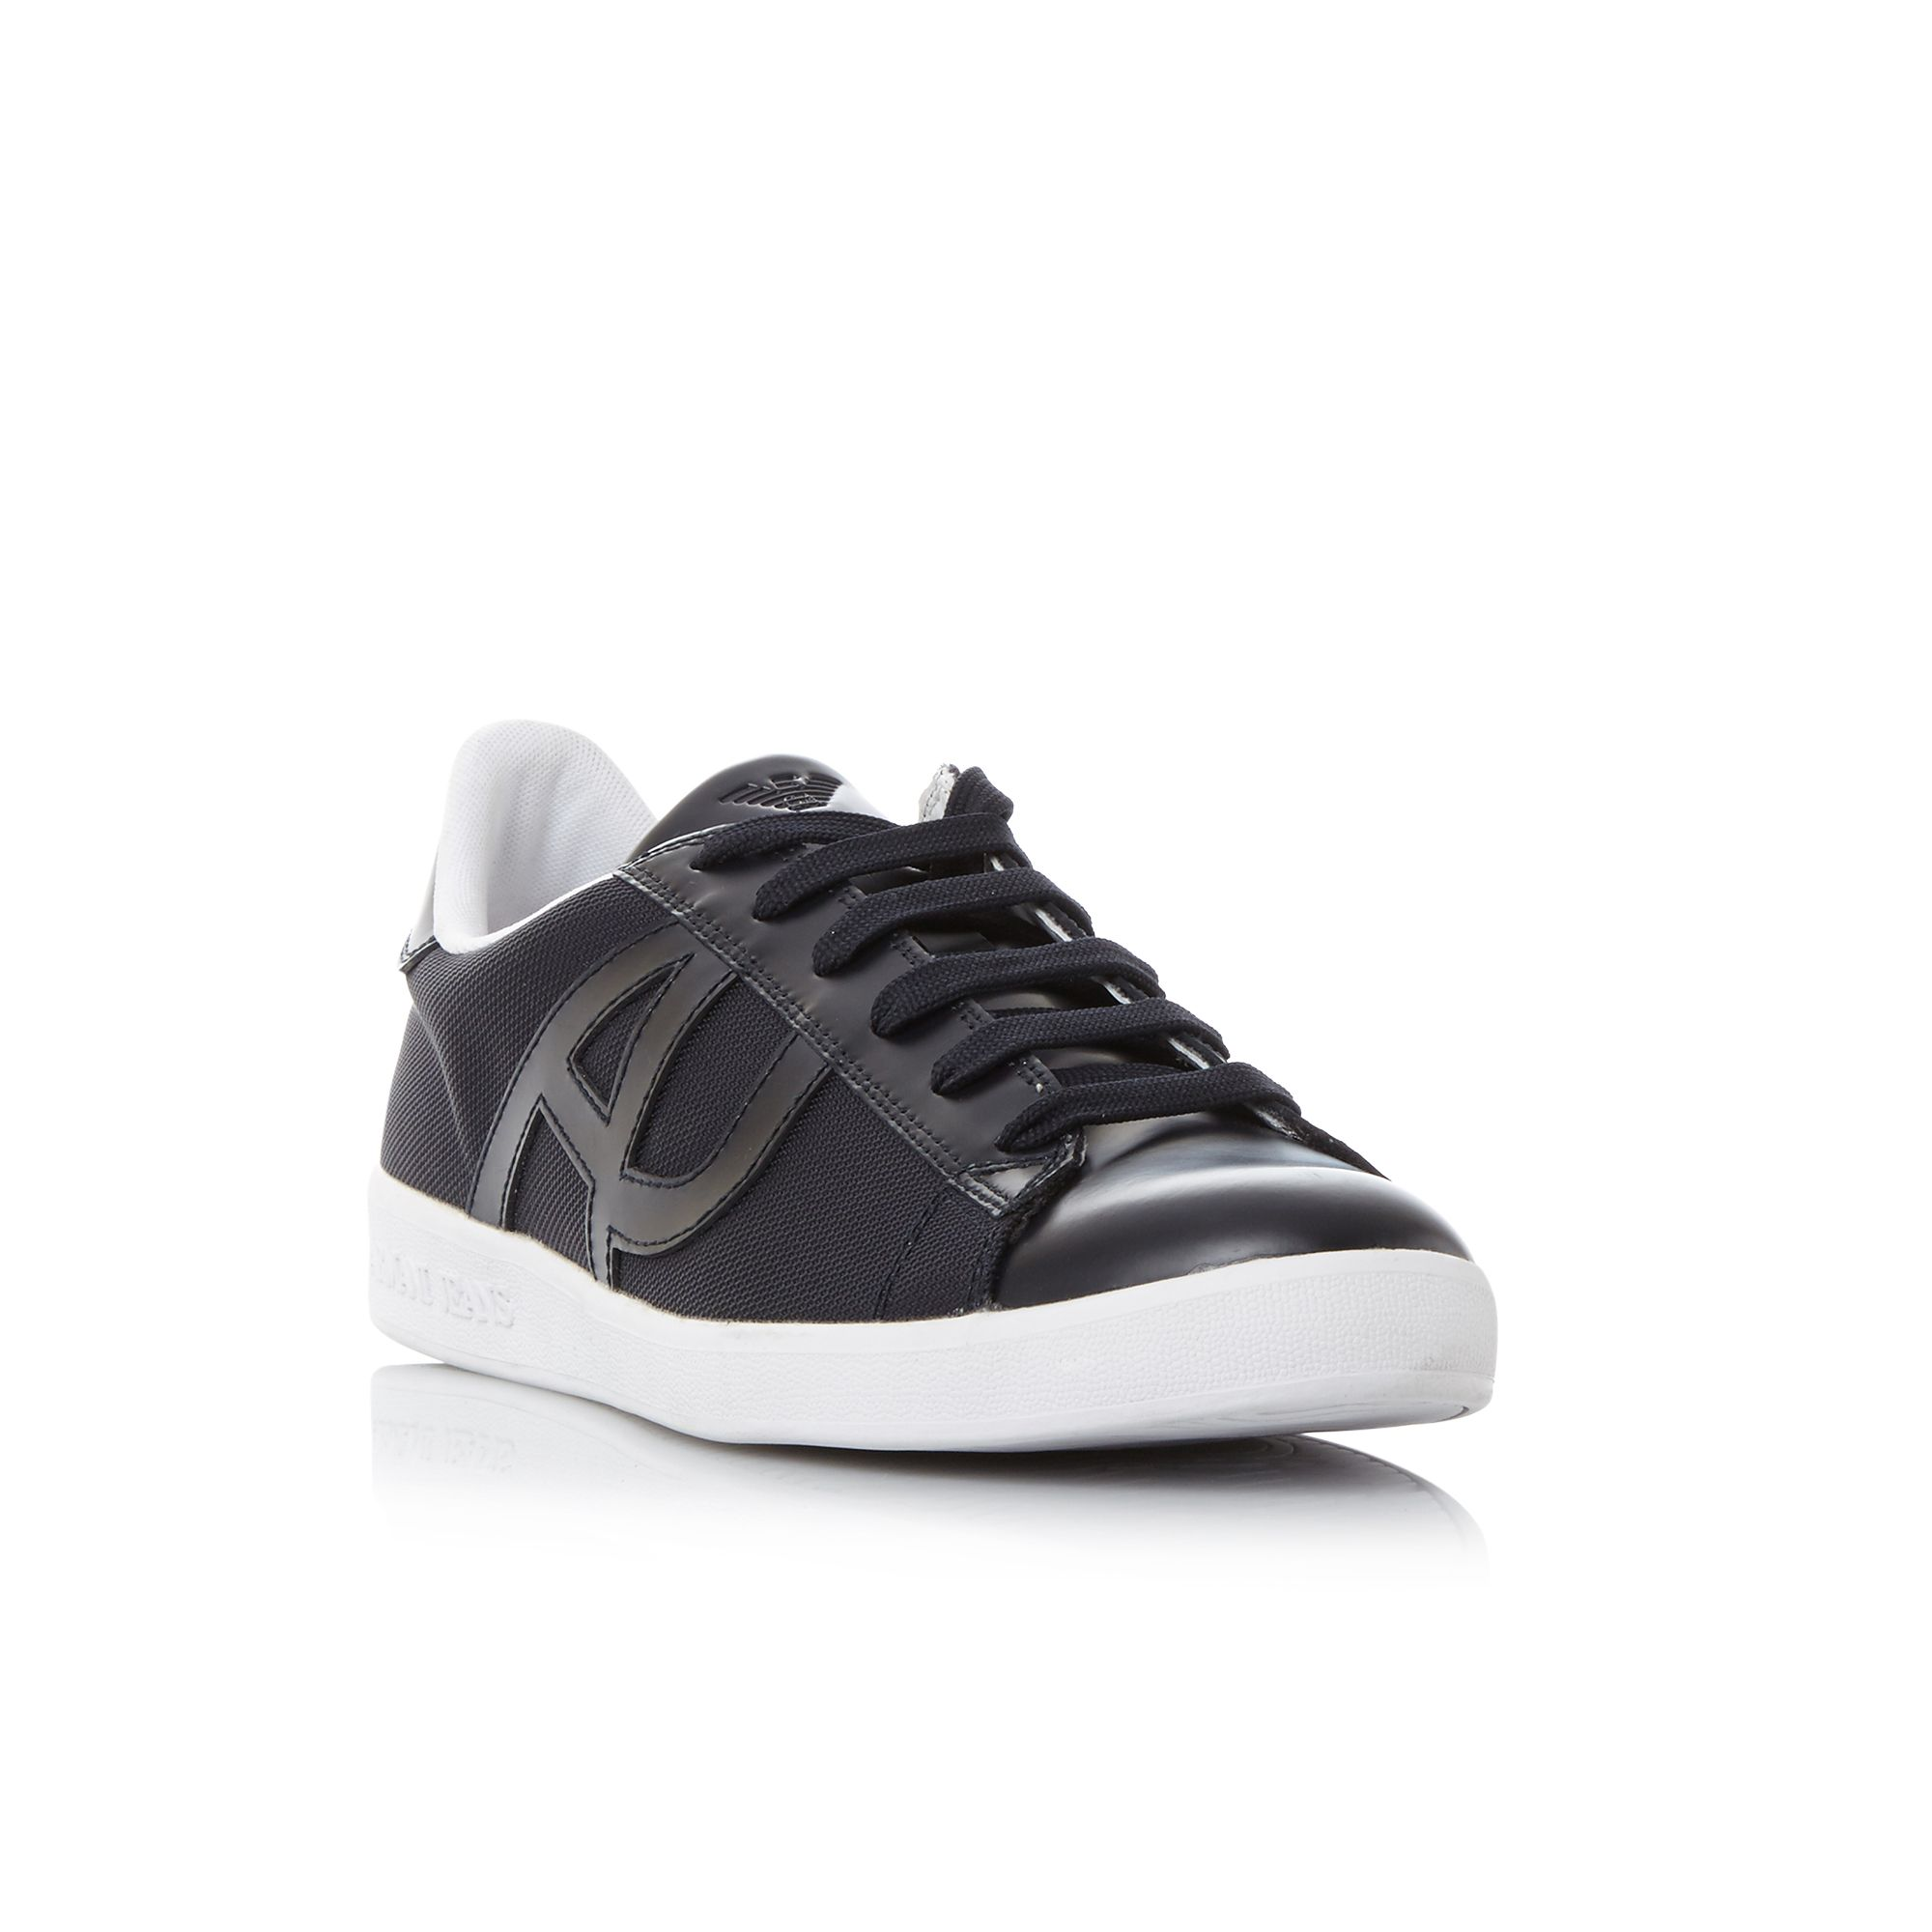 Armani Jeans 0935565cc503 canvas trainers Navy